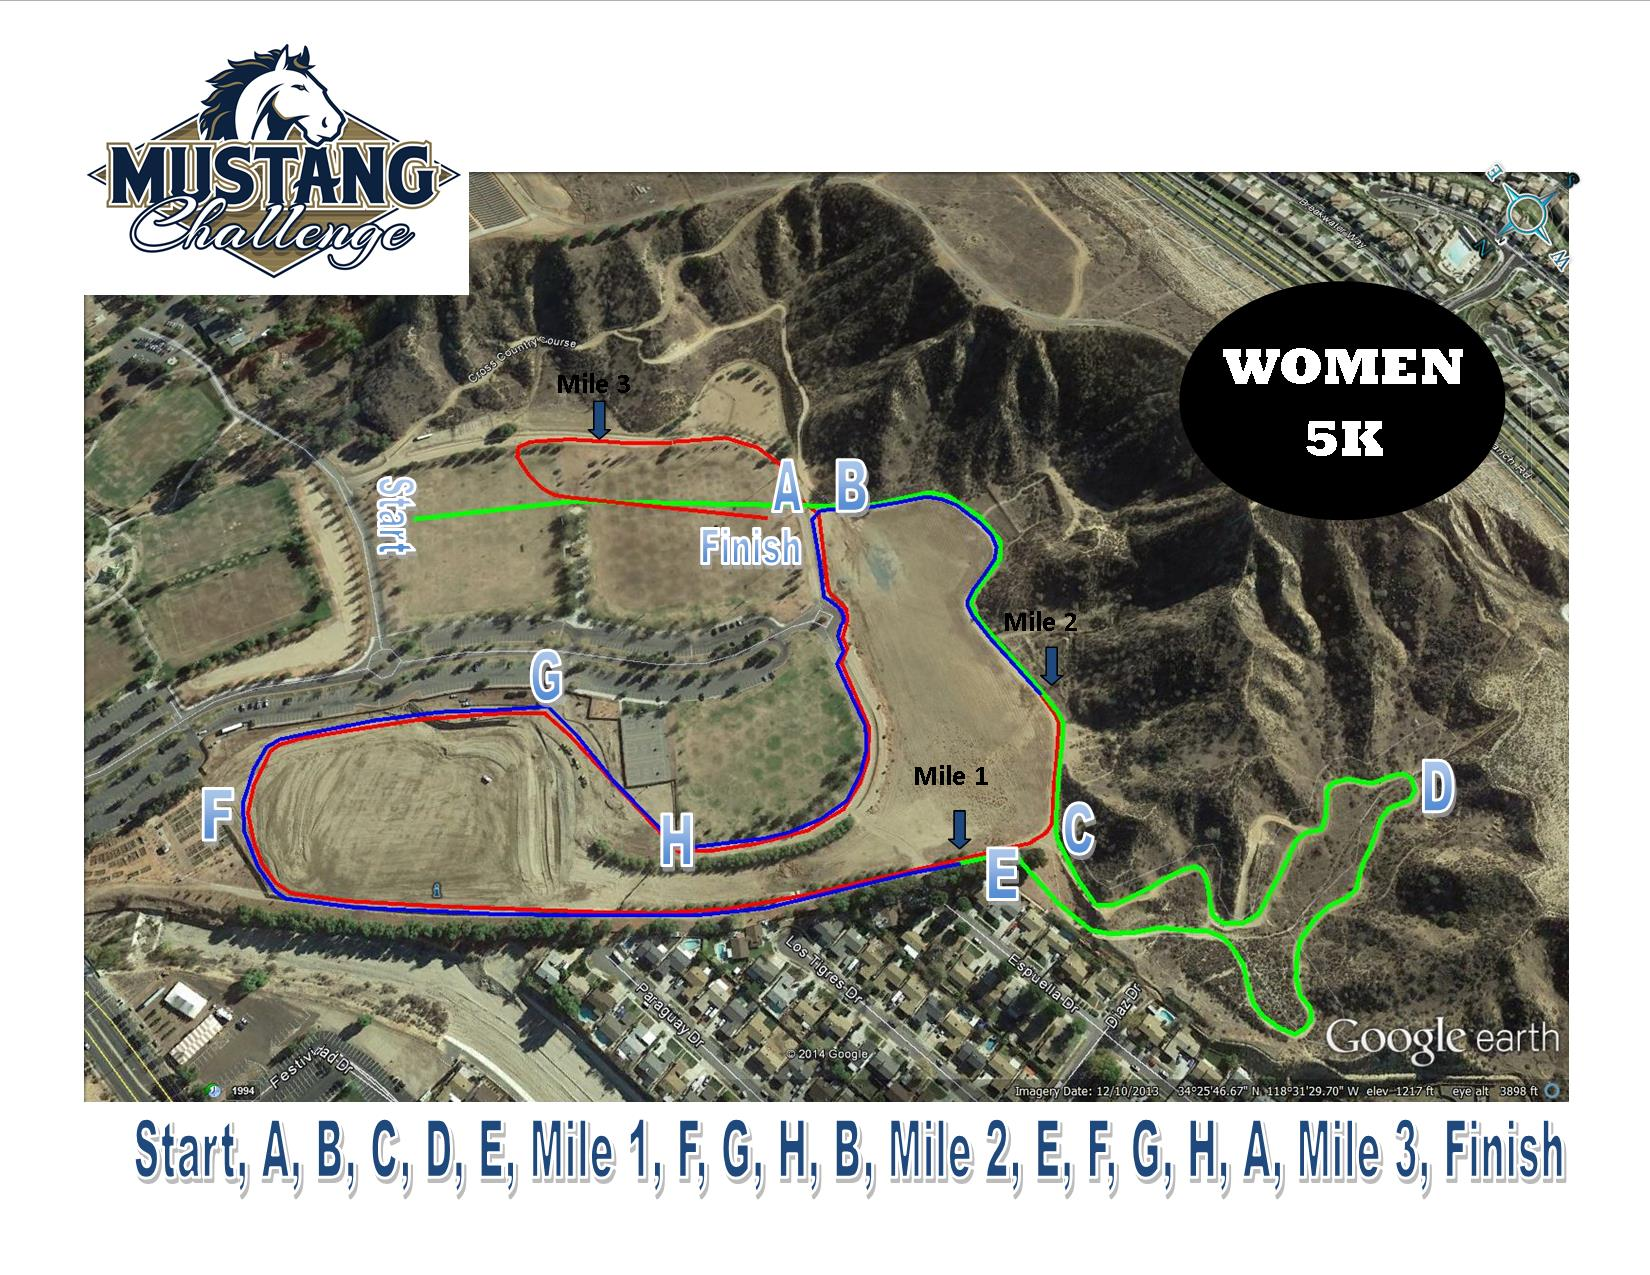 race course cougar women Click here to see more upcoming events or contact customer service at 1-888-9axs tix (1-888-929-7849) or guestservices@axscom.